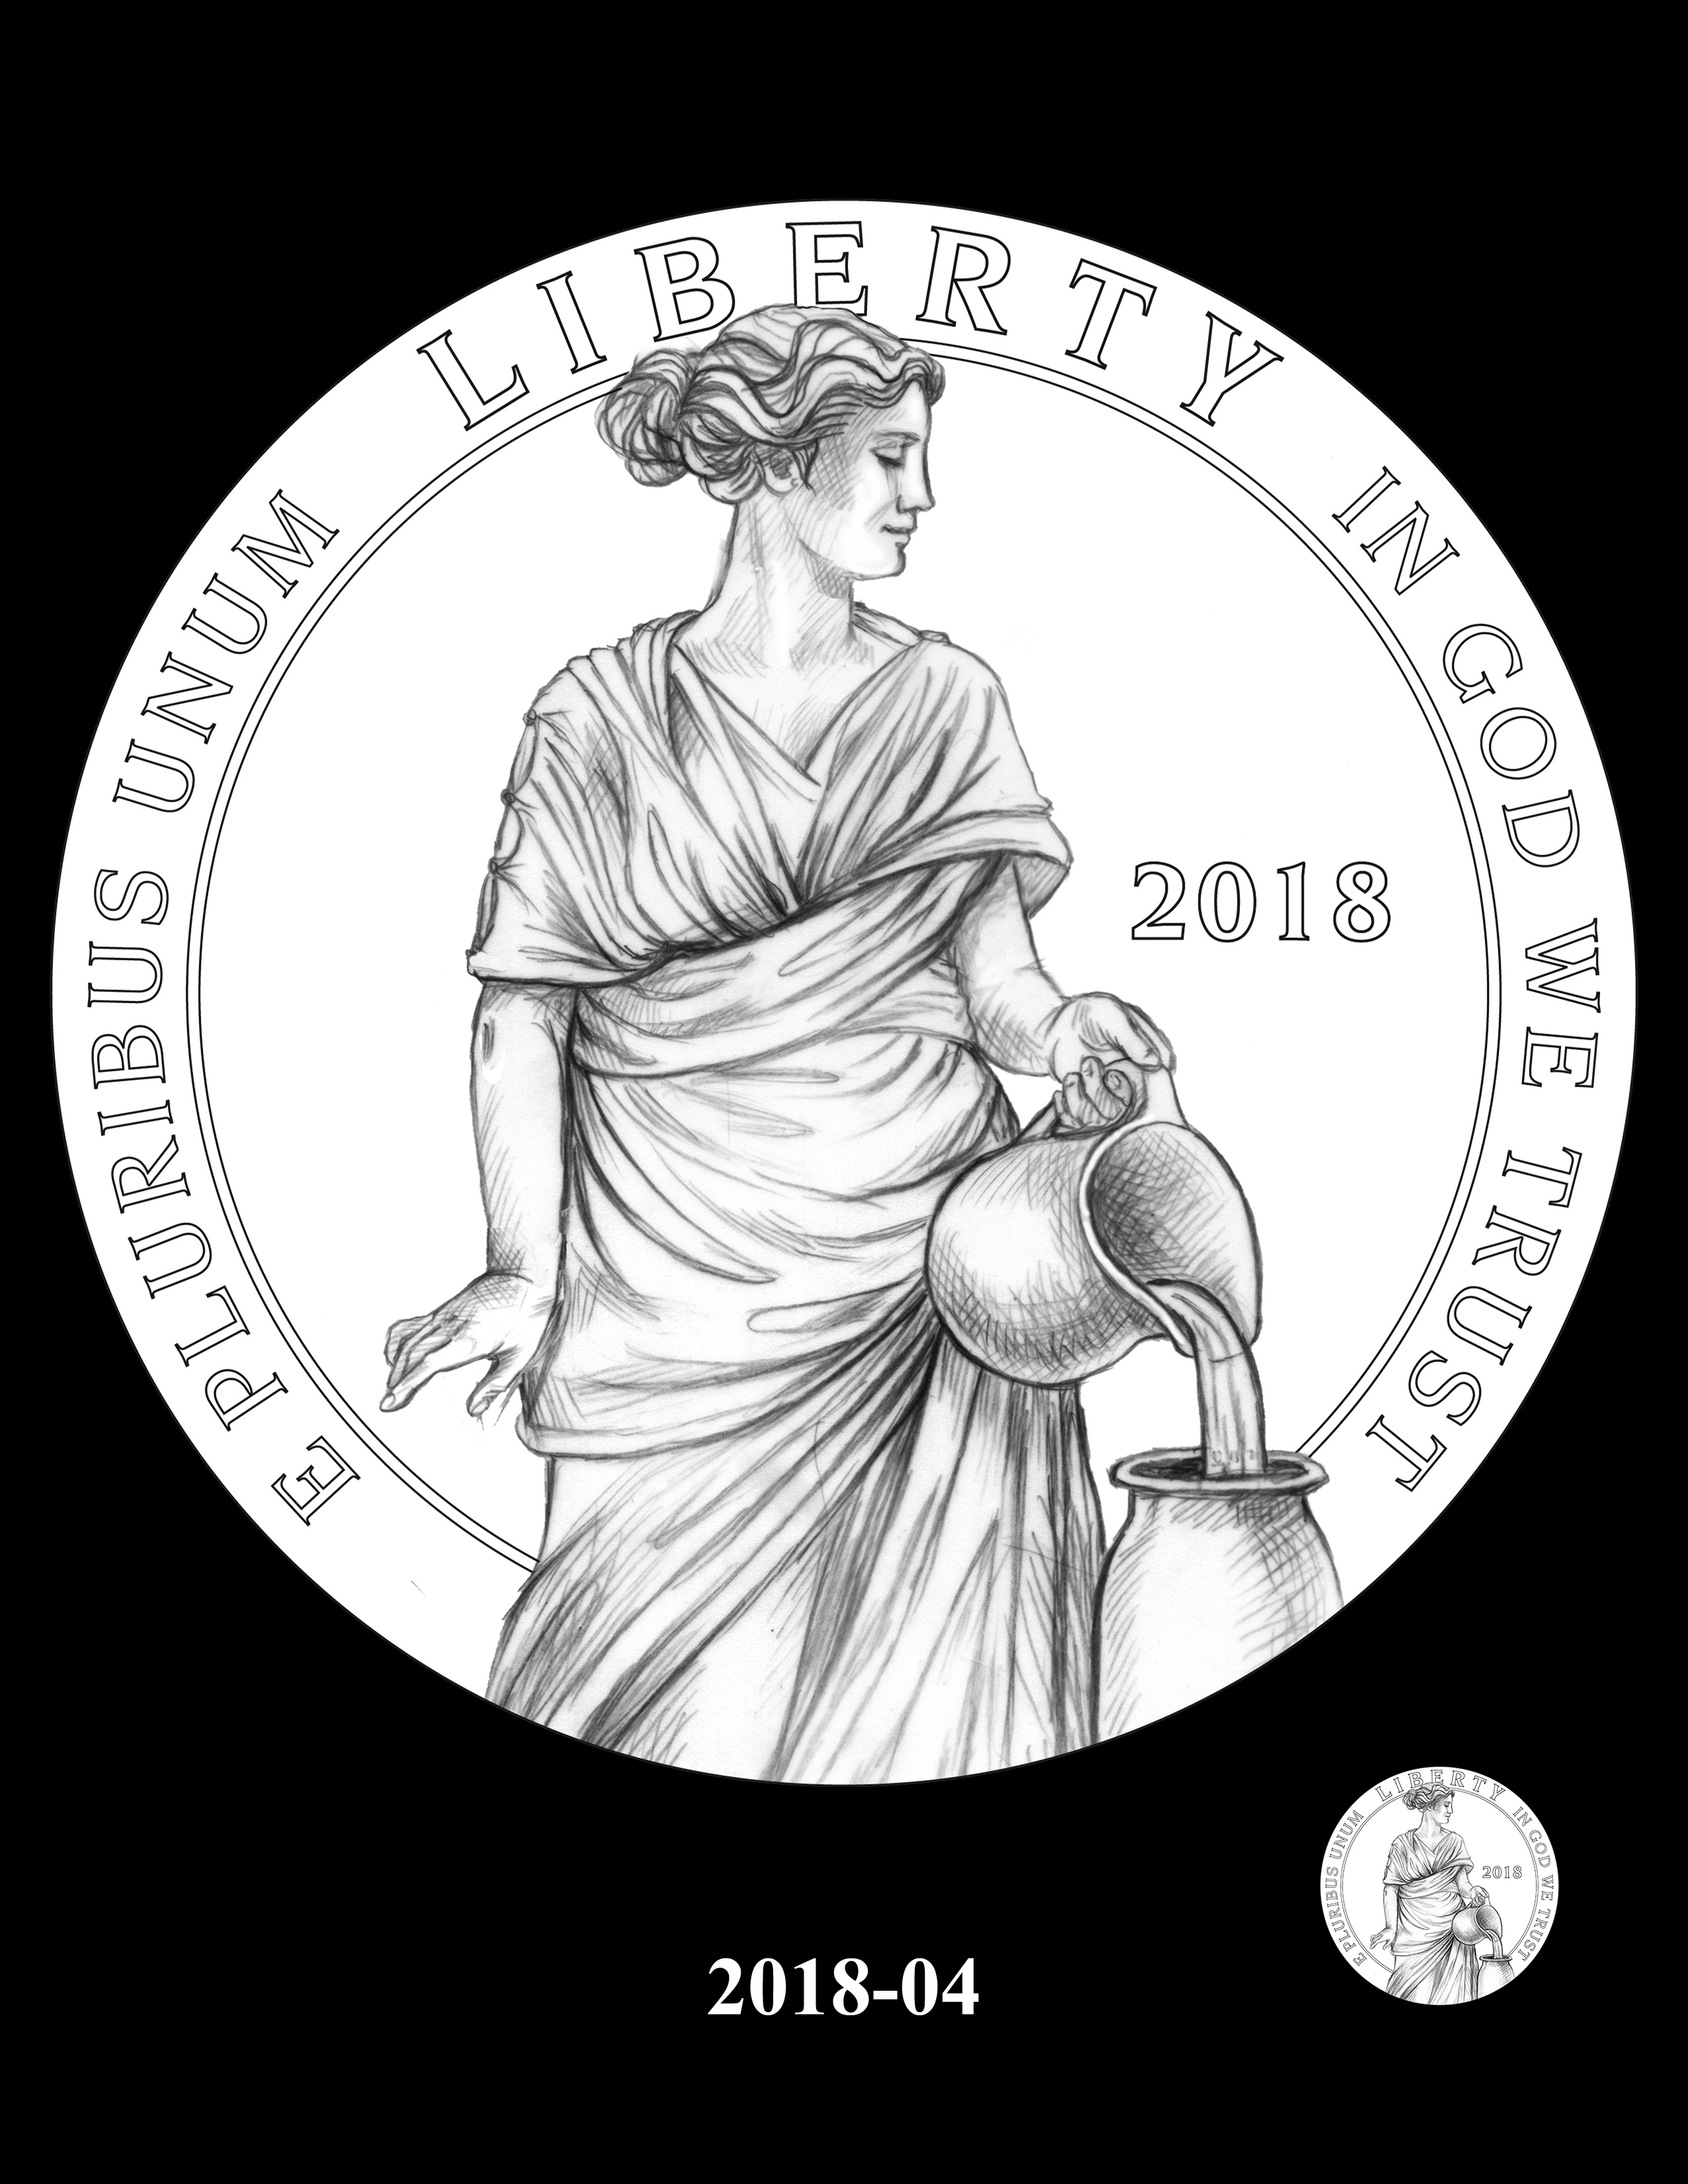 SET04-2018-04 - 2018 2019 and 2020 American Eagle Platinum Proof Program